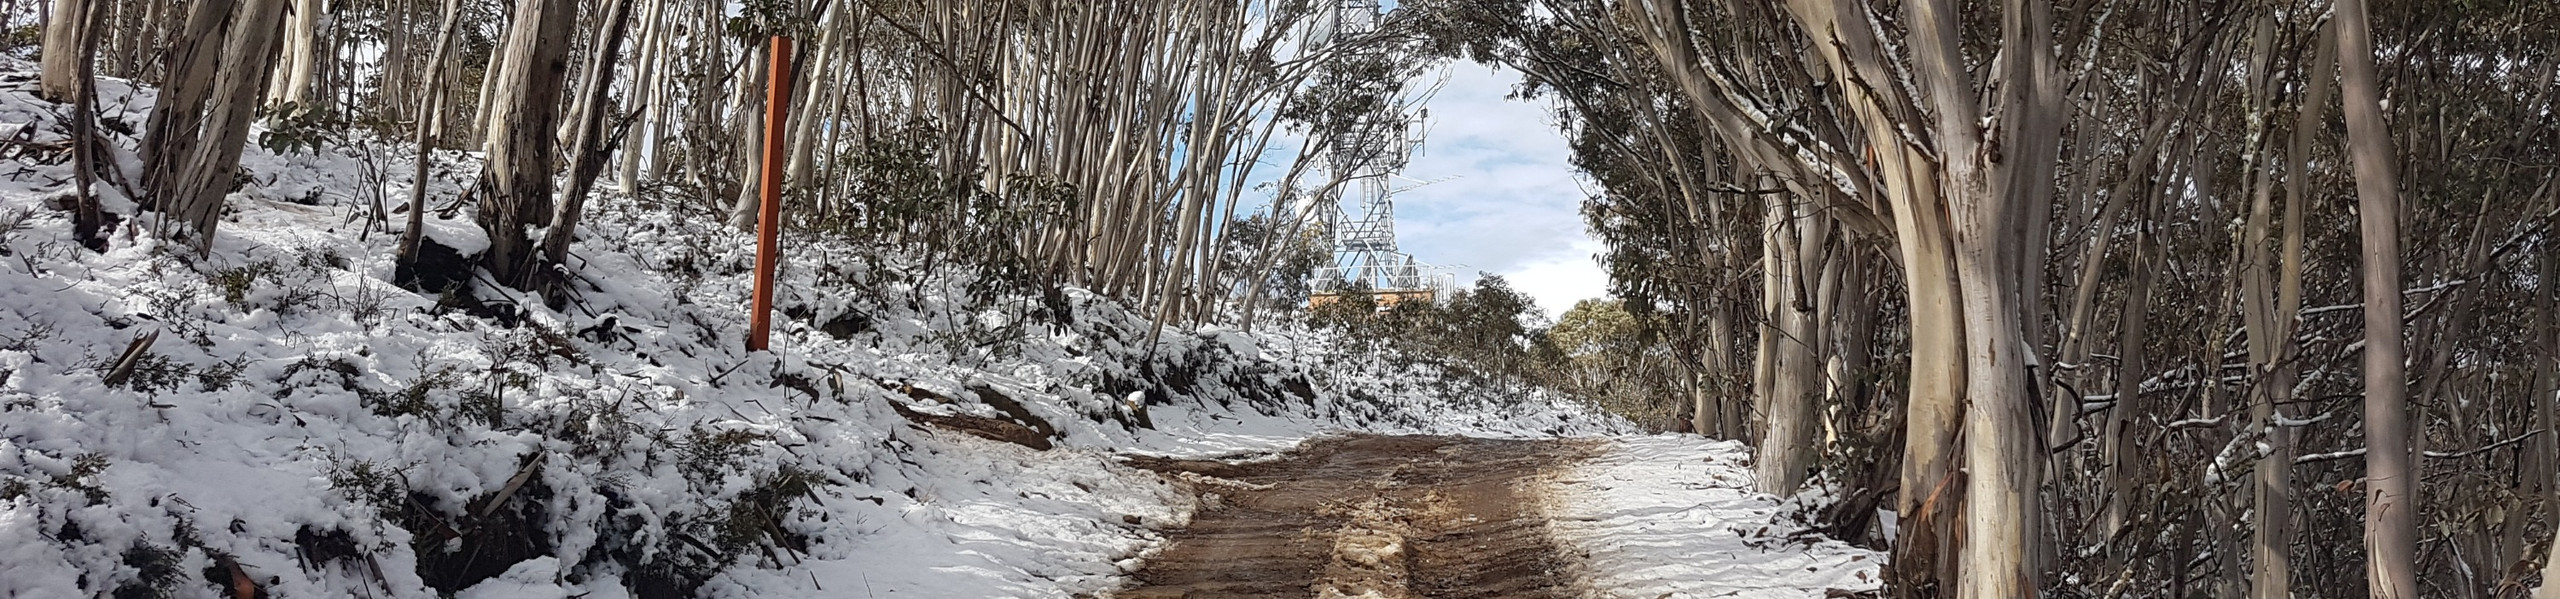 Mount Terrible Tower and road in snow winter no access fee